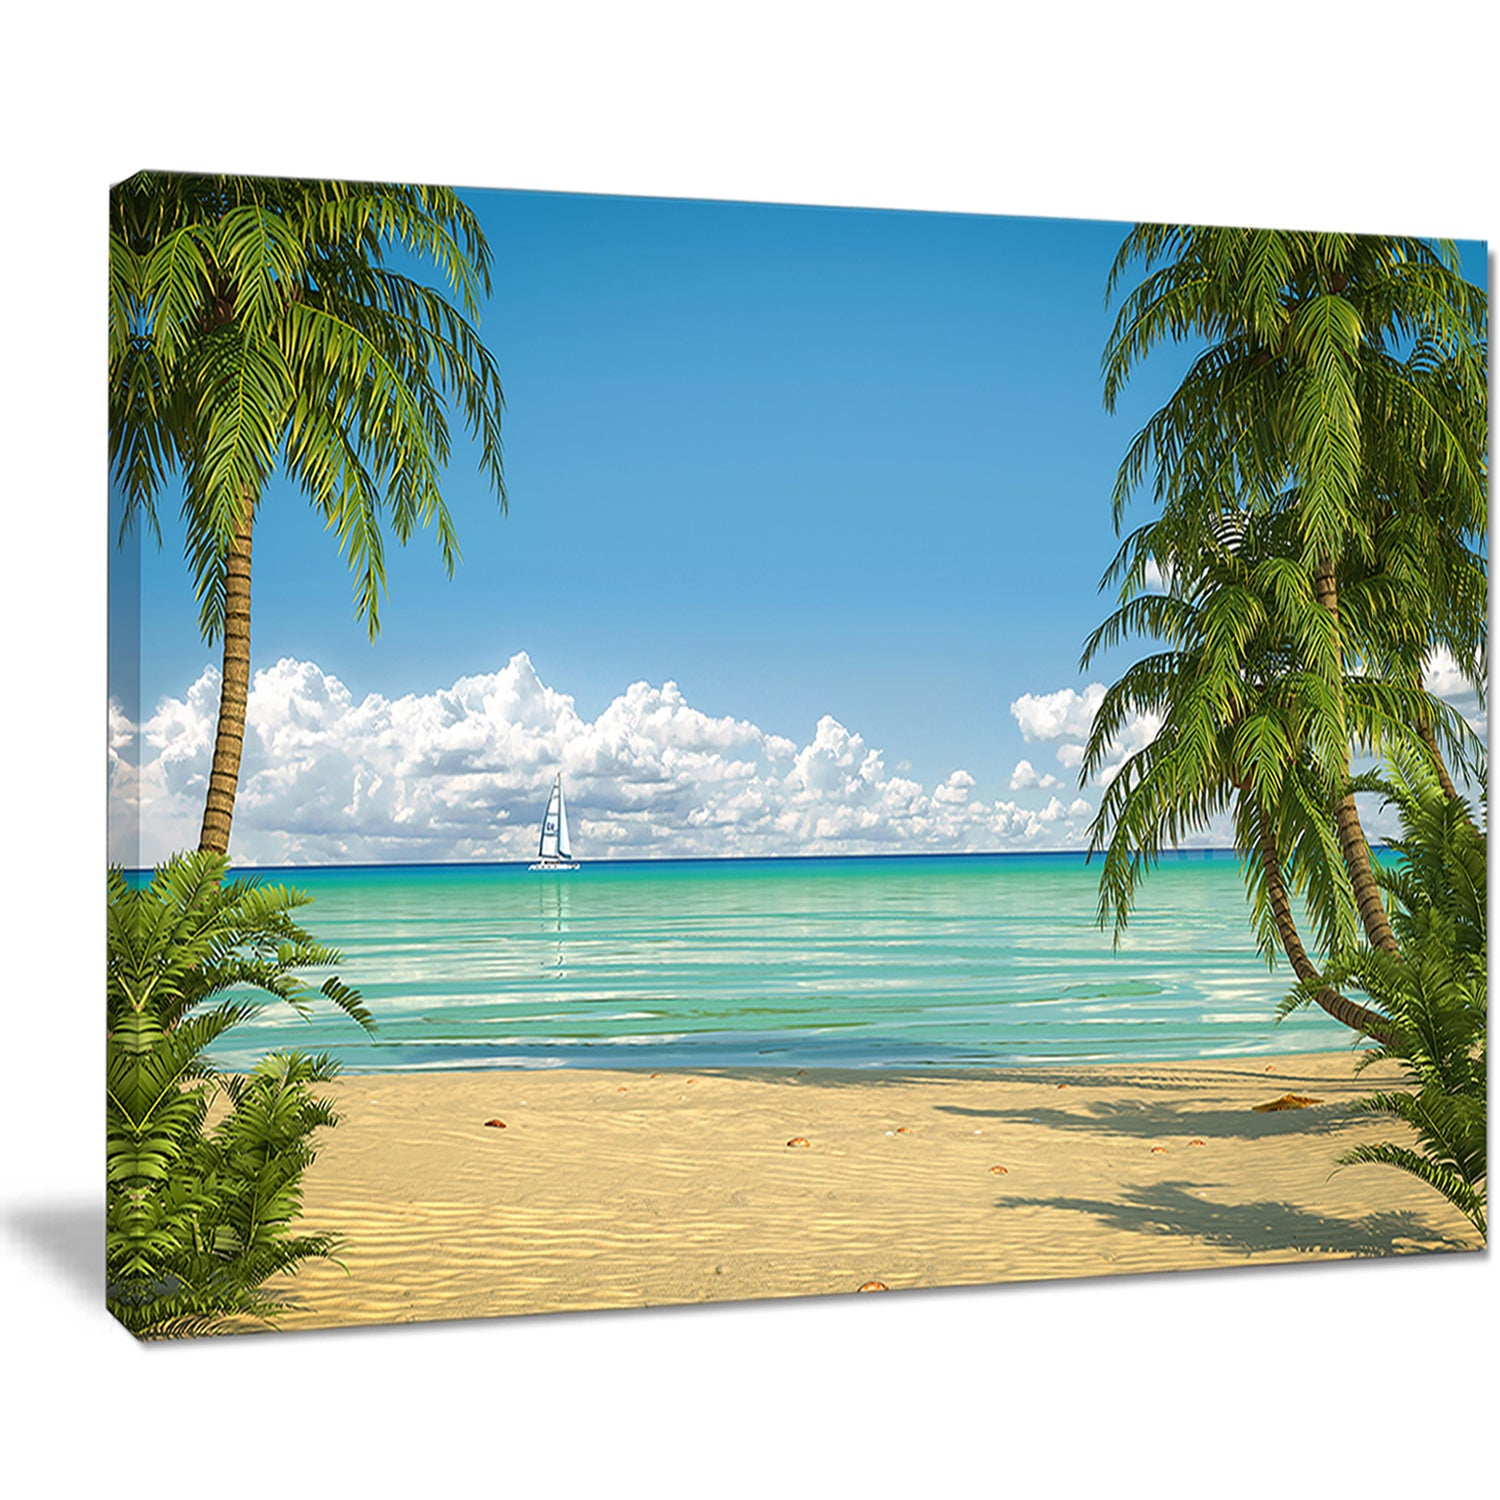 Palms-at-Caribbean-Beach-Seashore-Photo-Canvas-Art-Print-Small thumbnail 10